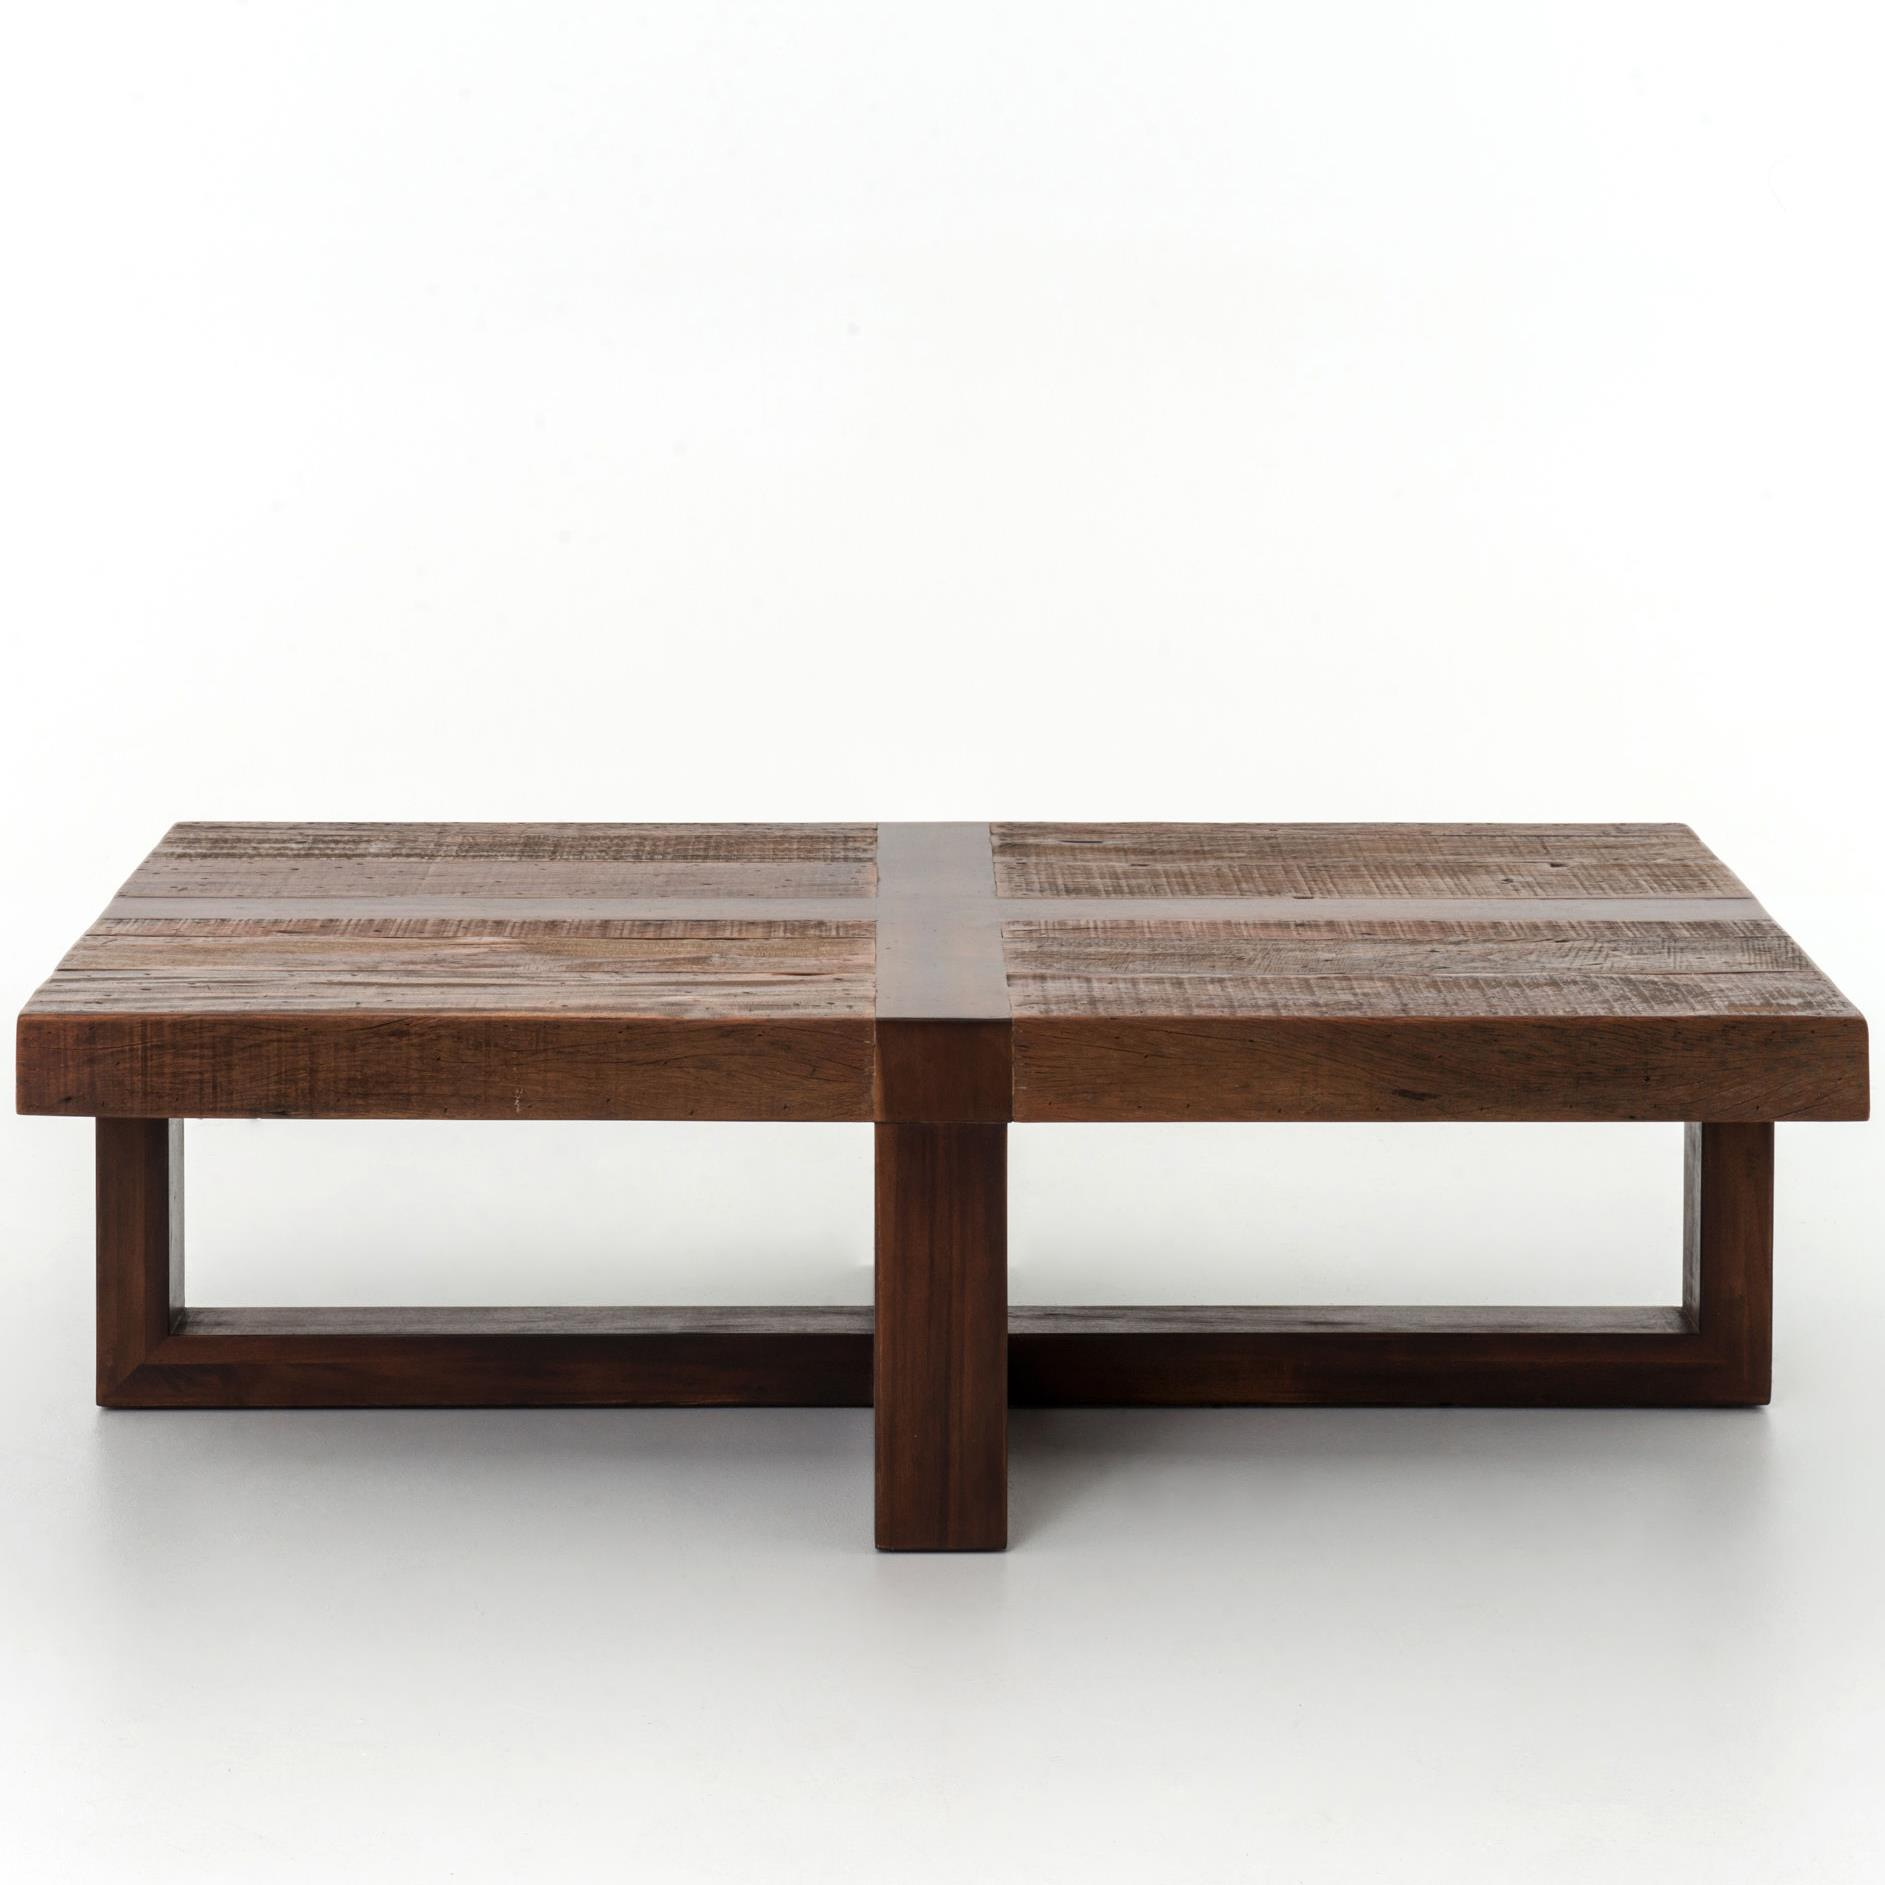 Four Hands Bina Reclaimed Bryan Coffee Table Belfort Furniture Cocktail Coffee Tables